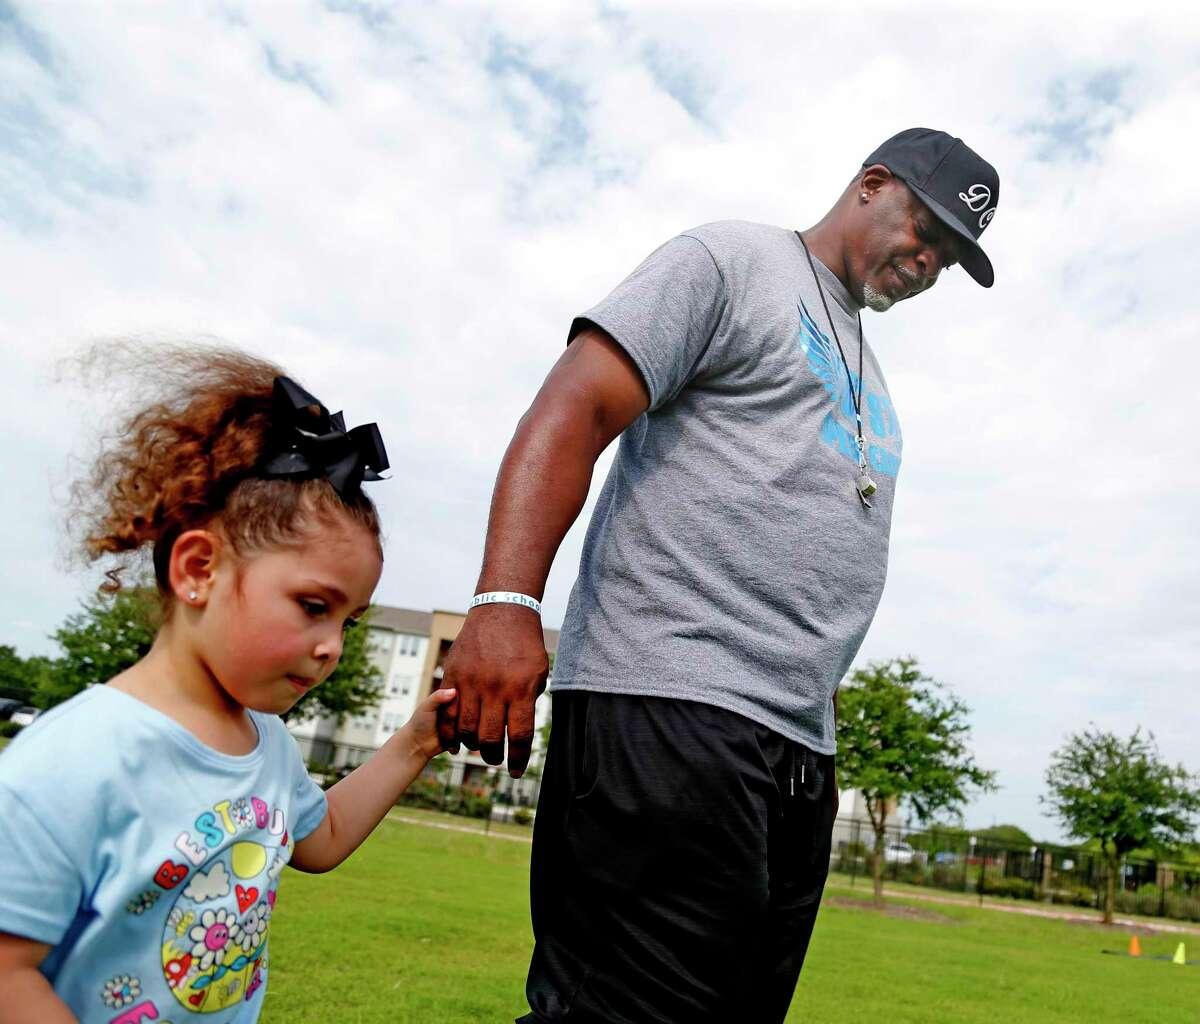 Coach Dominic Cameron helps Zoe Vela,4, go for her water break. For the past 10 years, physical education teacher Dominic Cameron has hosted DC Speed Camp, a free 16-week program for youth and teens to work on athletic and agility skills at IDEA Harvey E. Najim charter school, on Sunday, June 6, 2021.